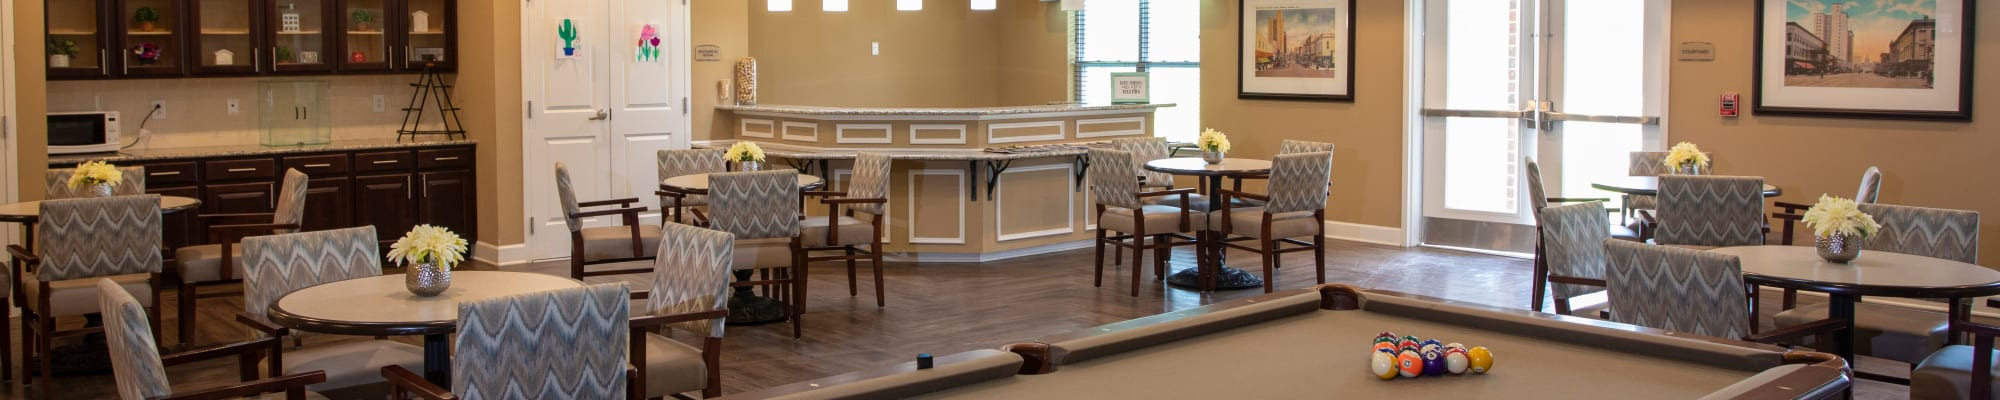 Our Community at The Harmony Collection at Columbia in Columbia, South Carolina